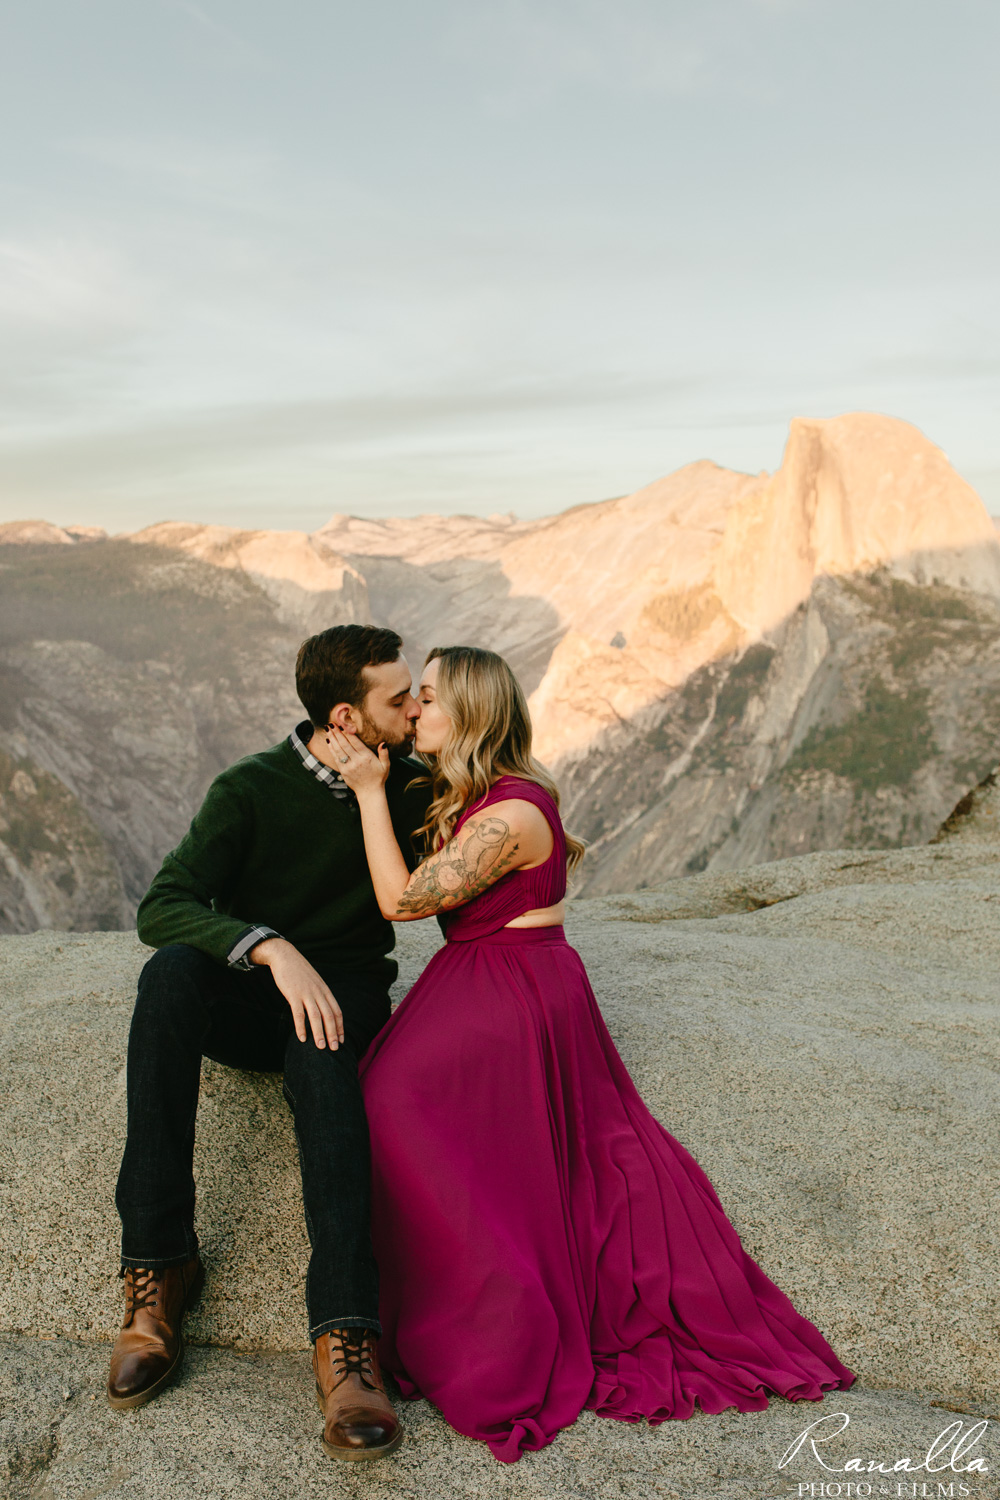 Yosemite Engagement Session-Glacier Point Engaegment Photos-Ranalla Photo & Films-19.jpg